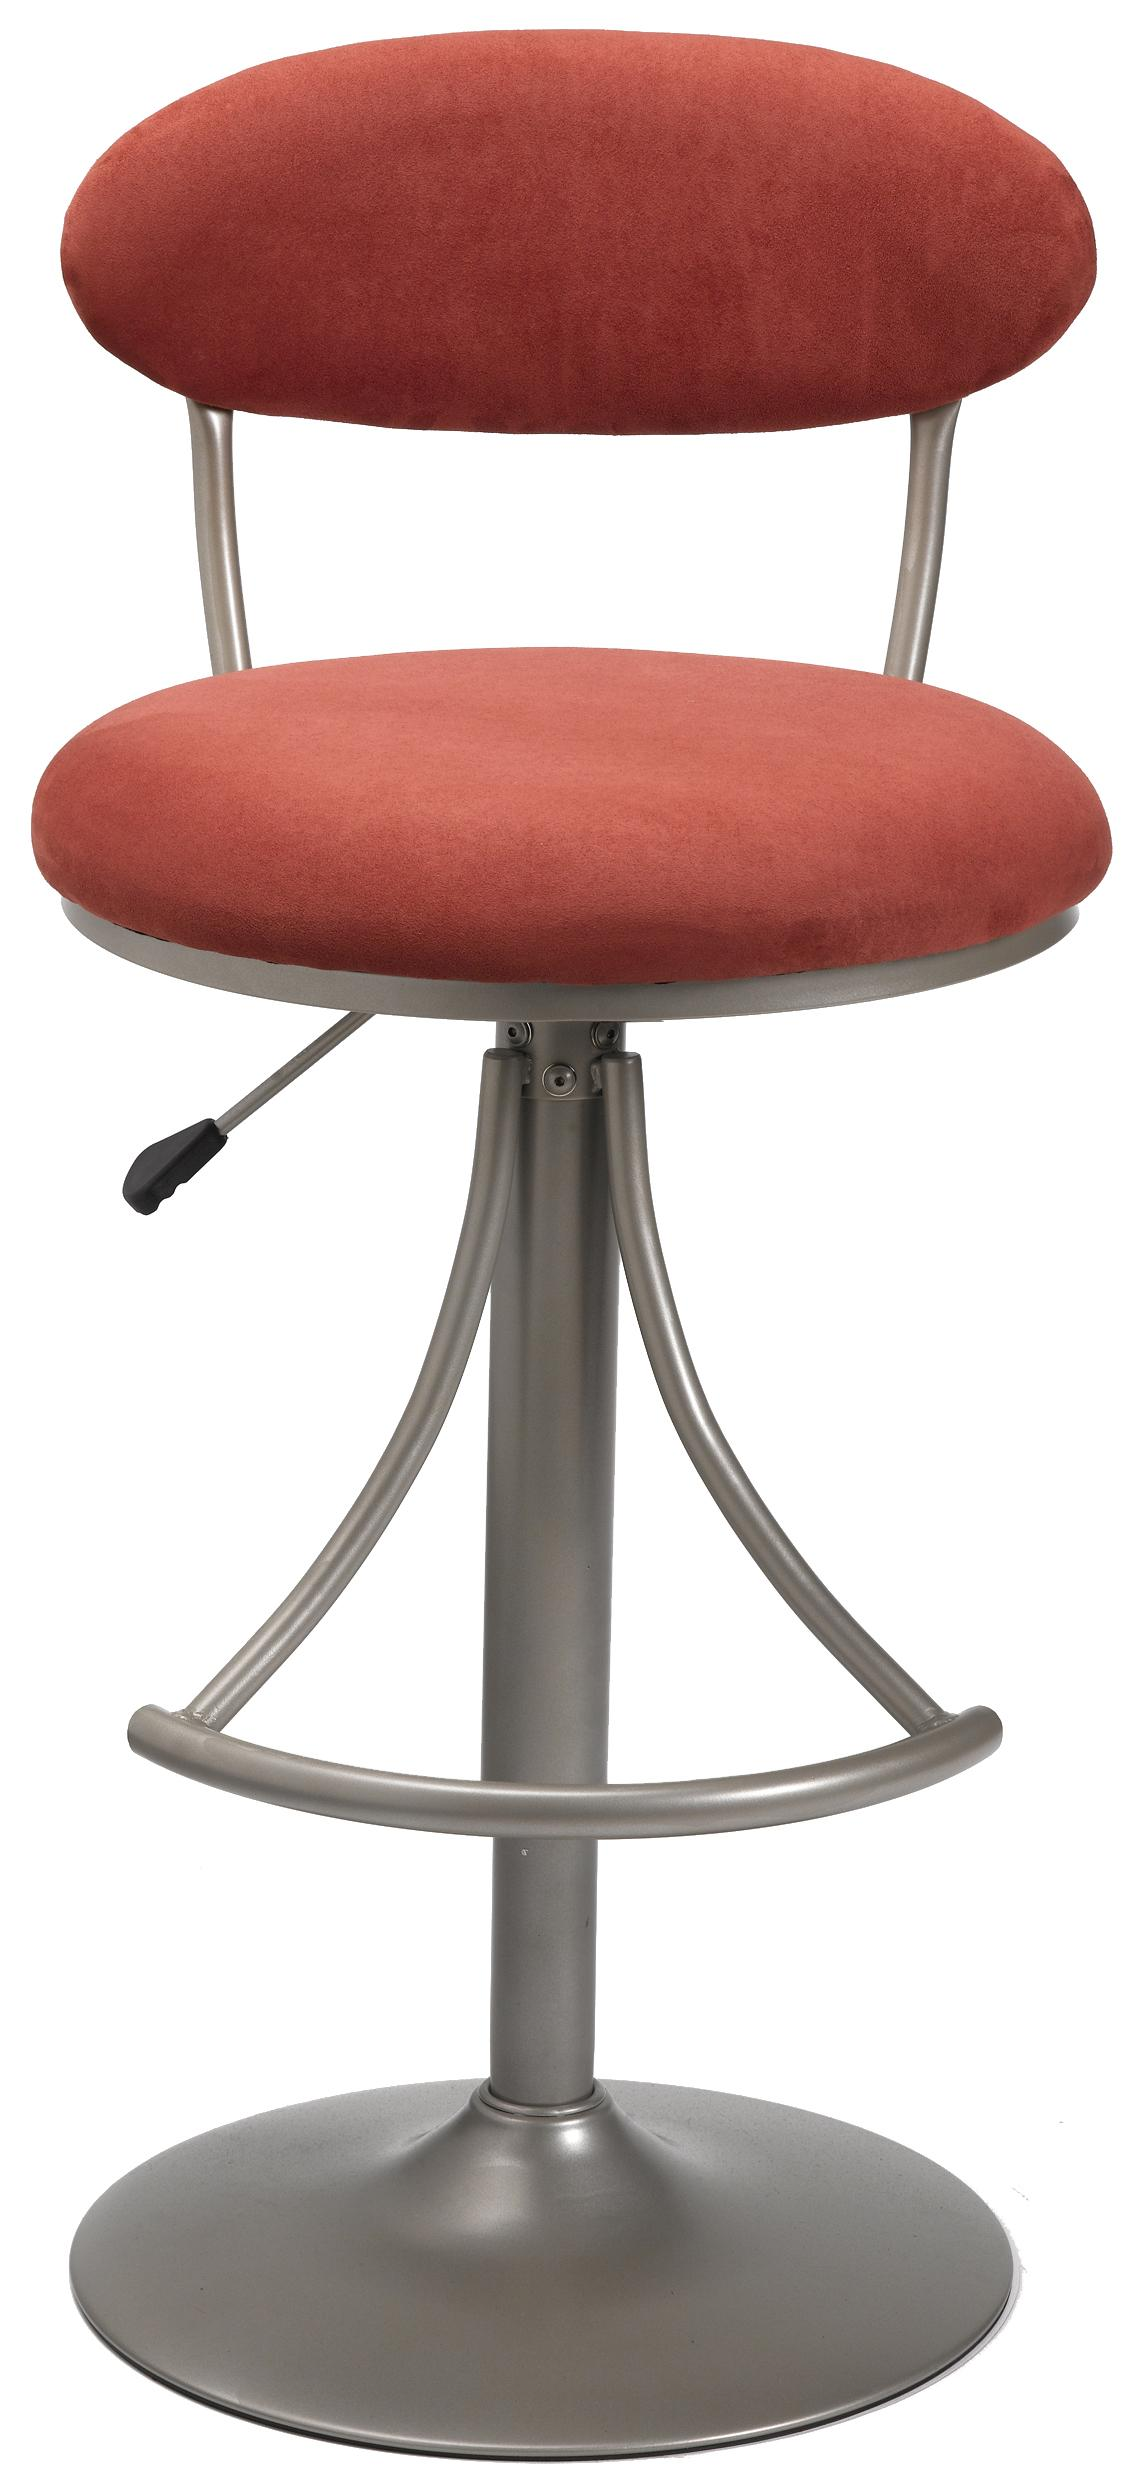 Hillsdale Metal Stools Adjustable Height Venus Swivel Stool - Item Number: 4210-825